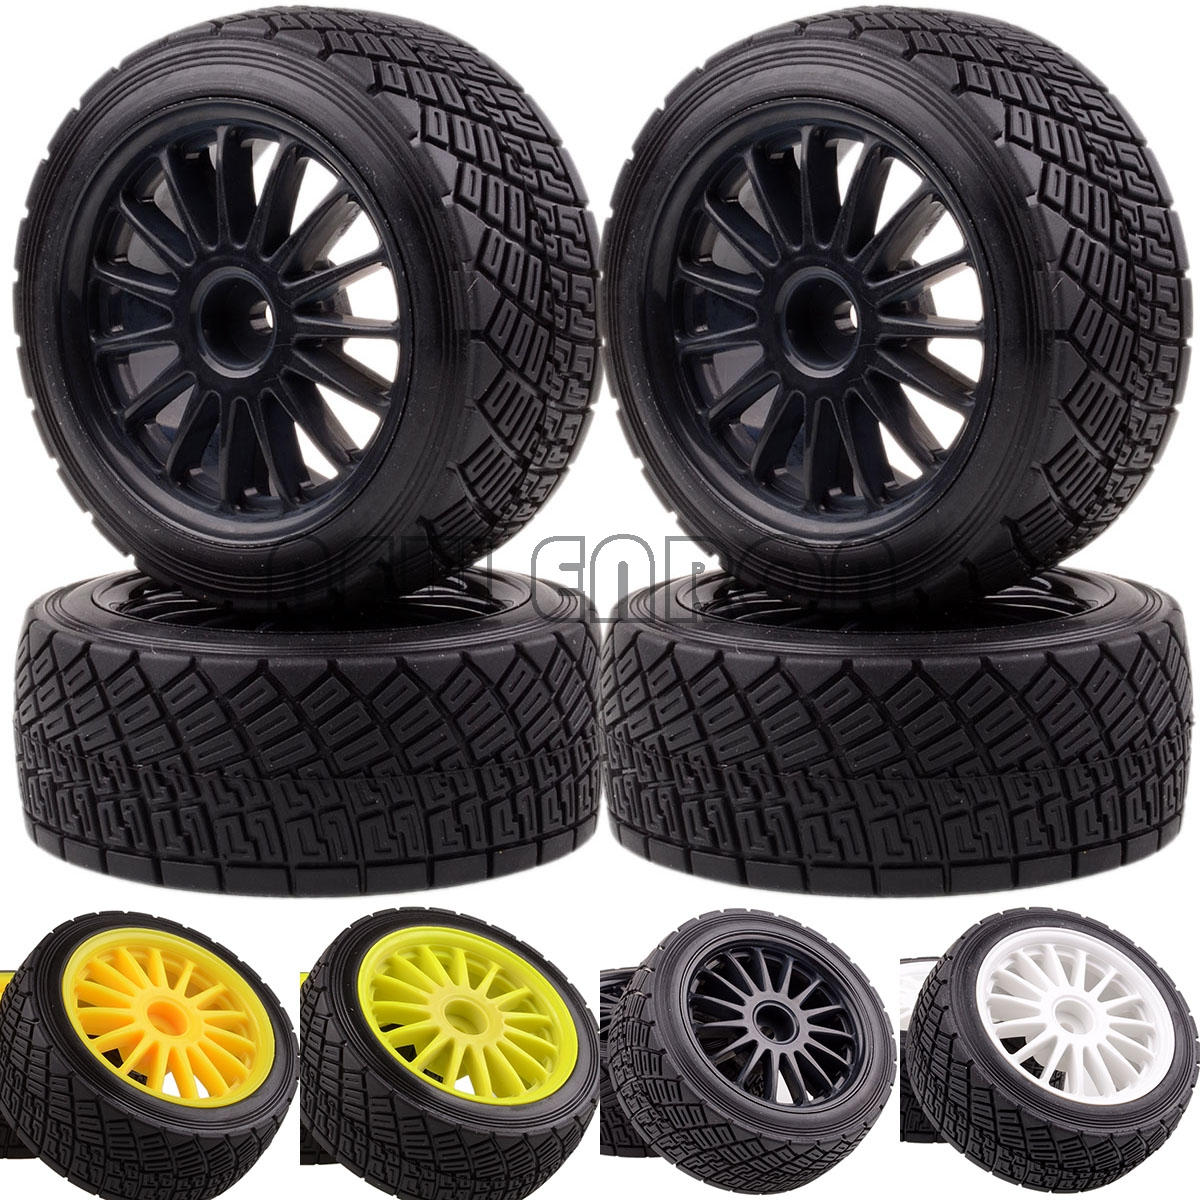 NEW ENRON 4P 2.2 Inch Wheel Rims Hub & 80MM Tires Tyre RC CAR PART RC CAR 1/10 Fit 1:10 HPI WR8 Flux Rally 3.0 110697 94177